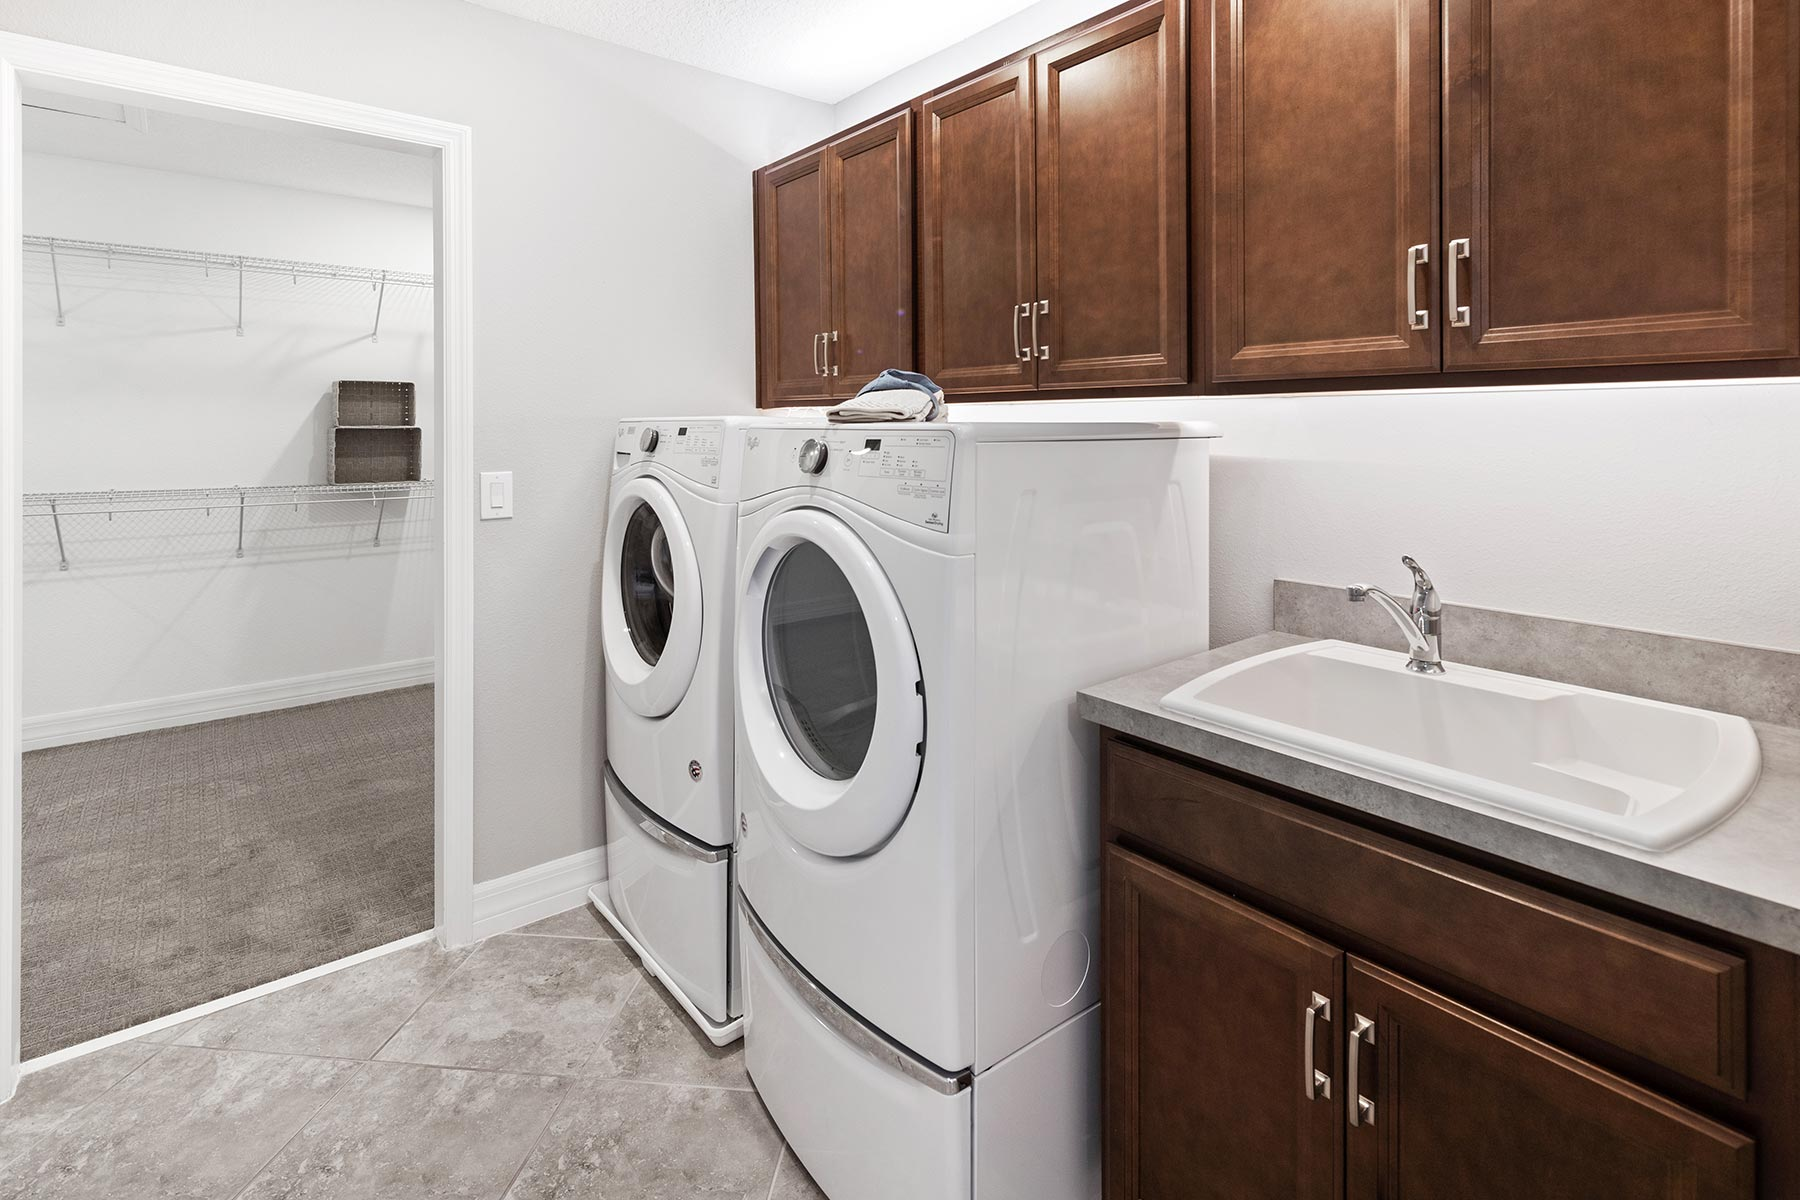 Kensington Plan Laundry at Preserve at Crown Point in Ocoee Florida by Mattamy Homes